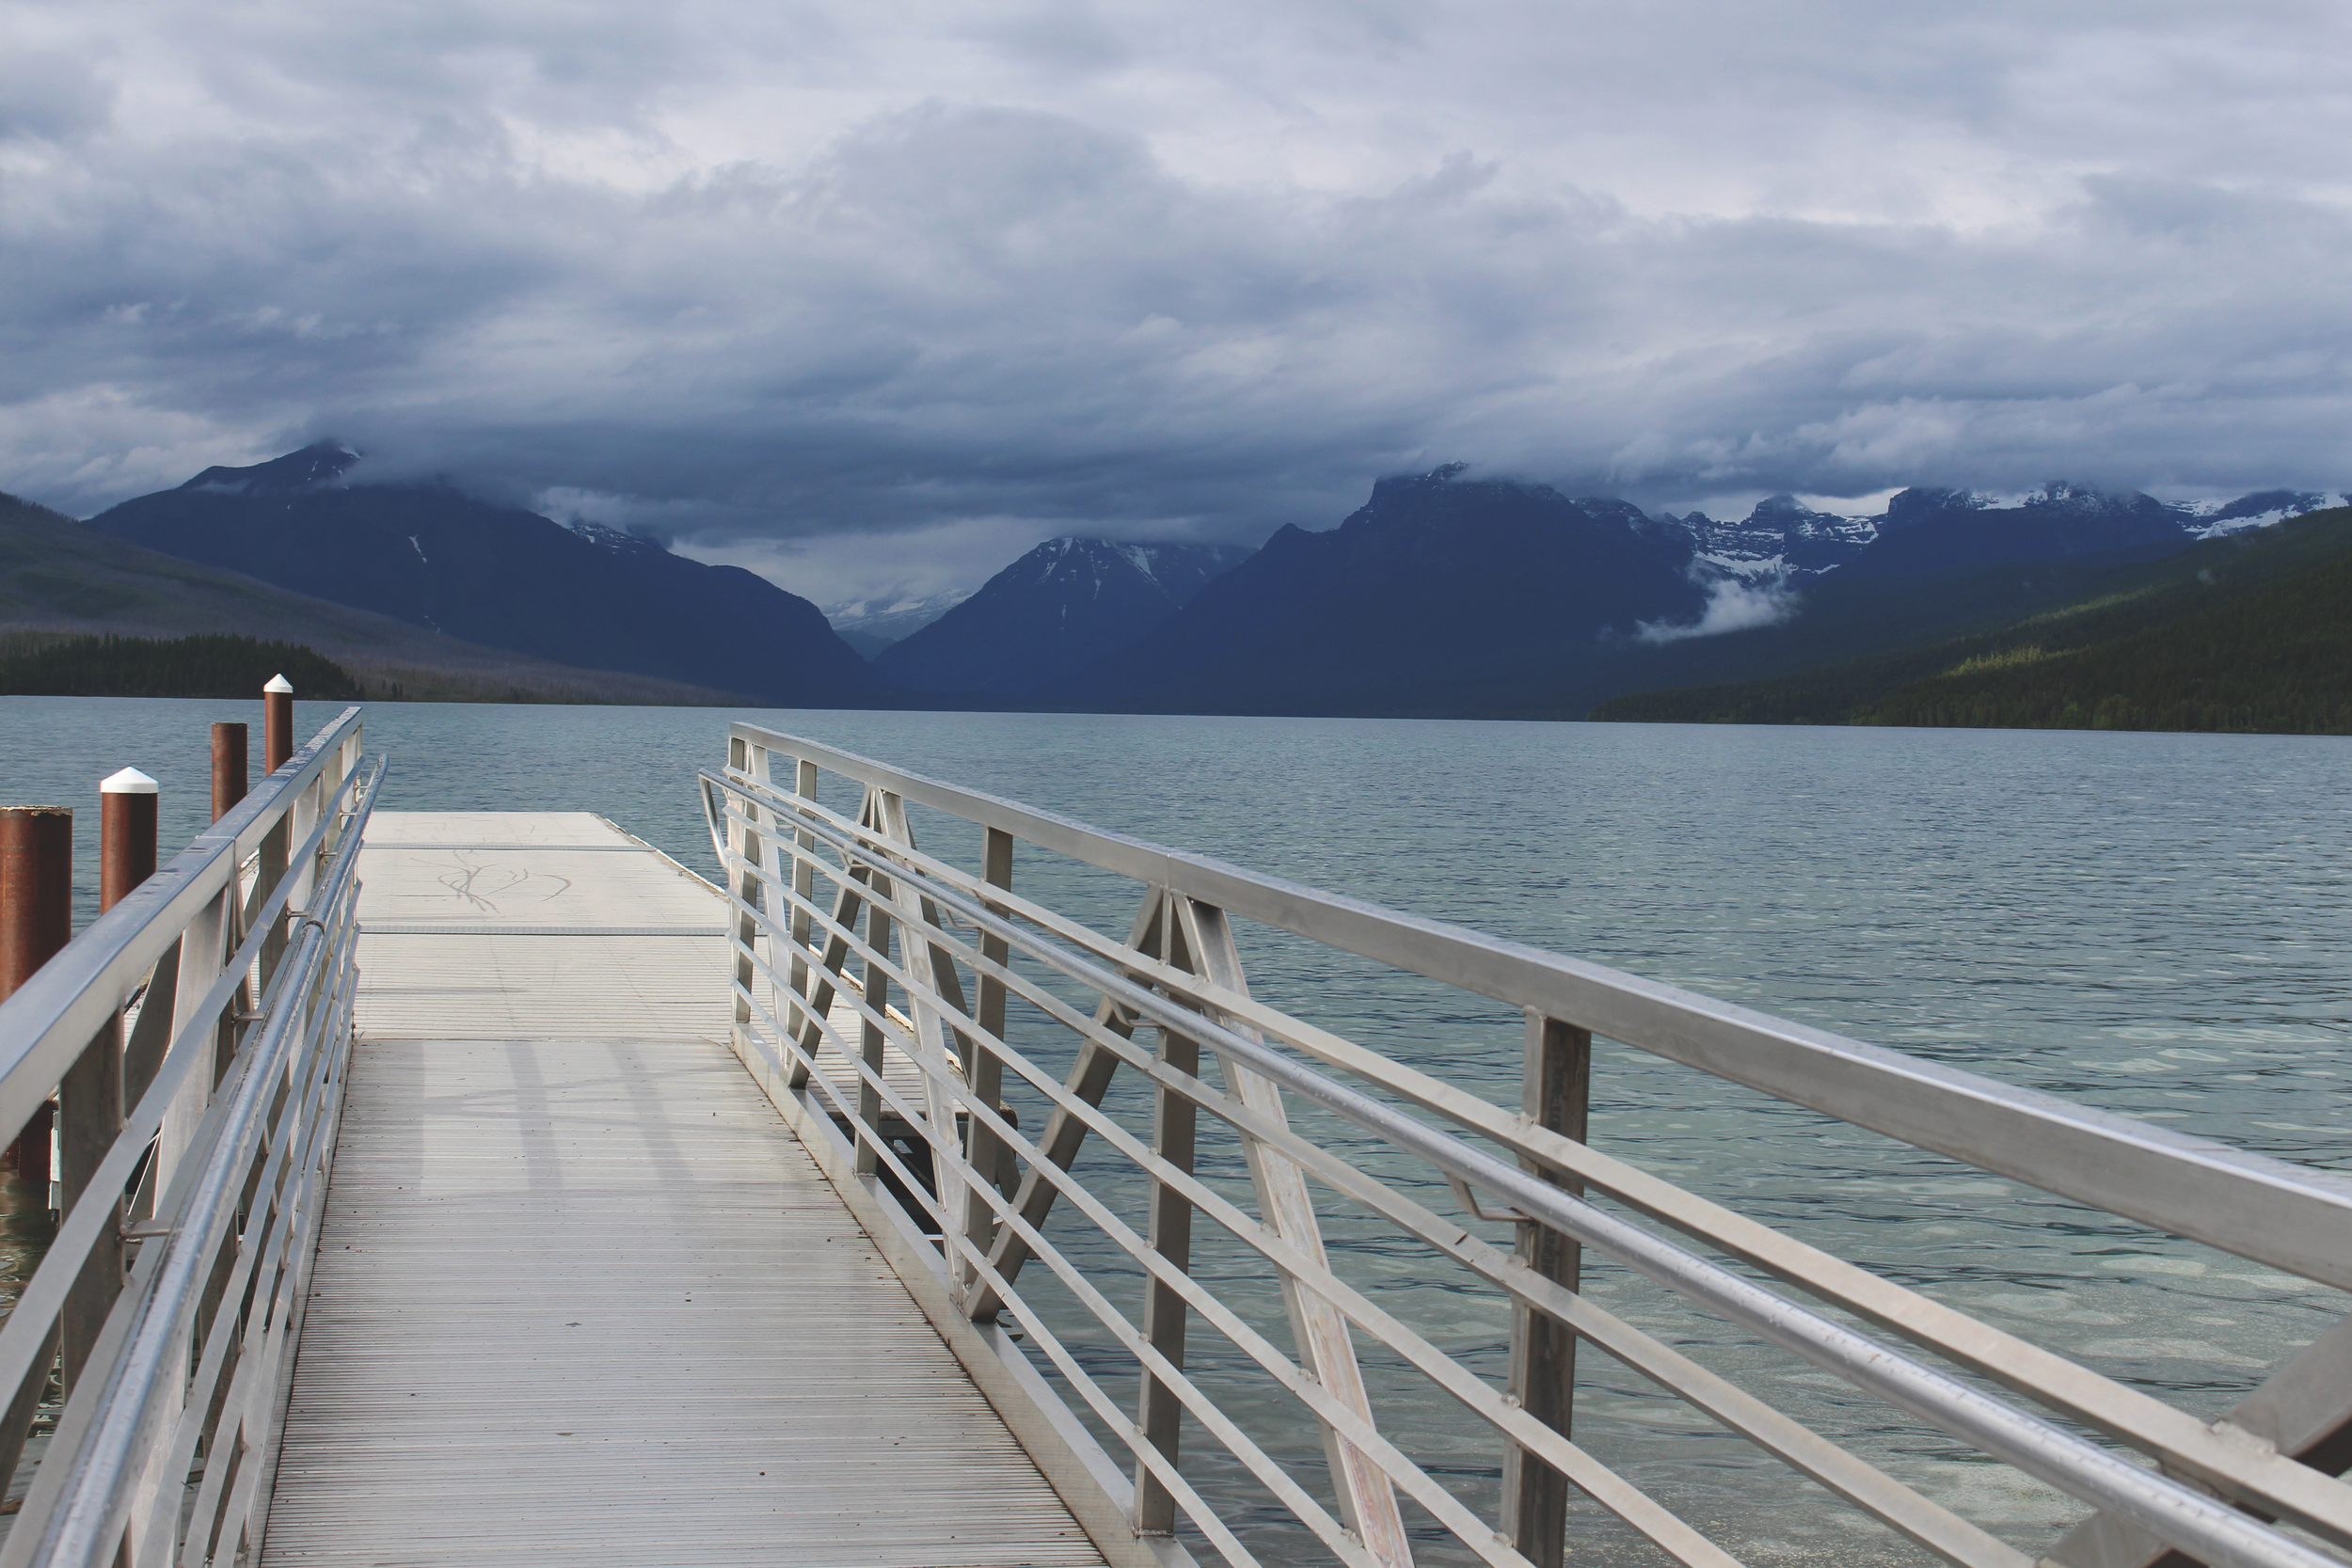 Dock in Apgar Village - Glacier National Park, Montana